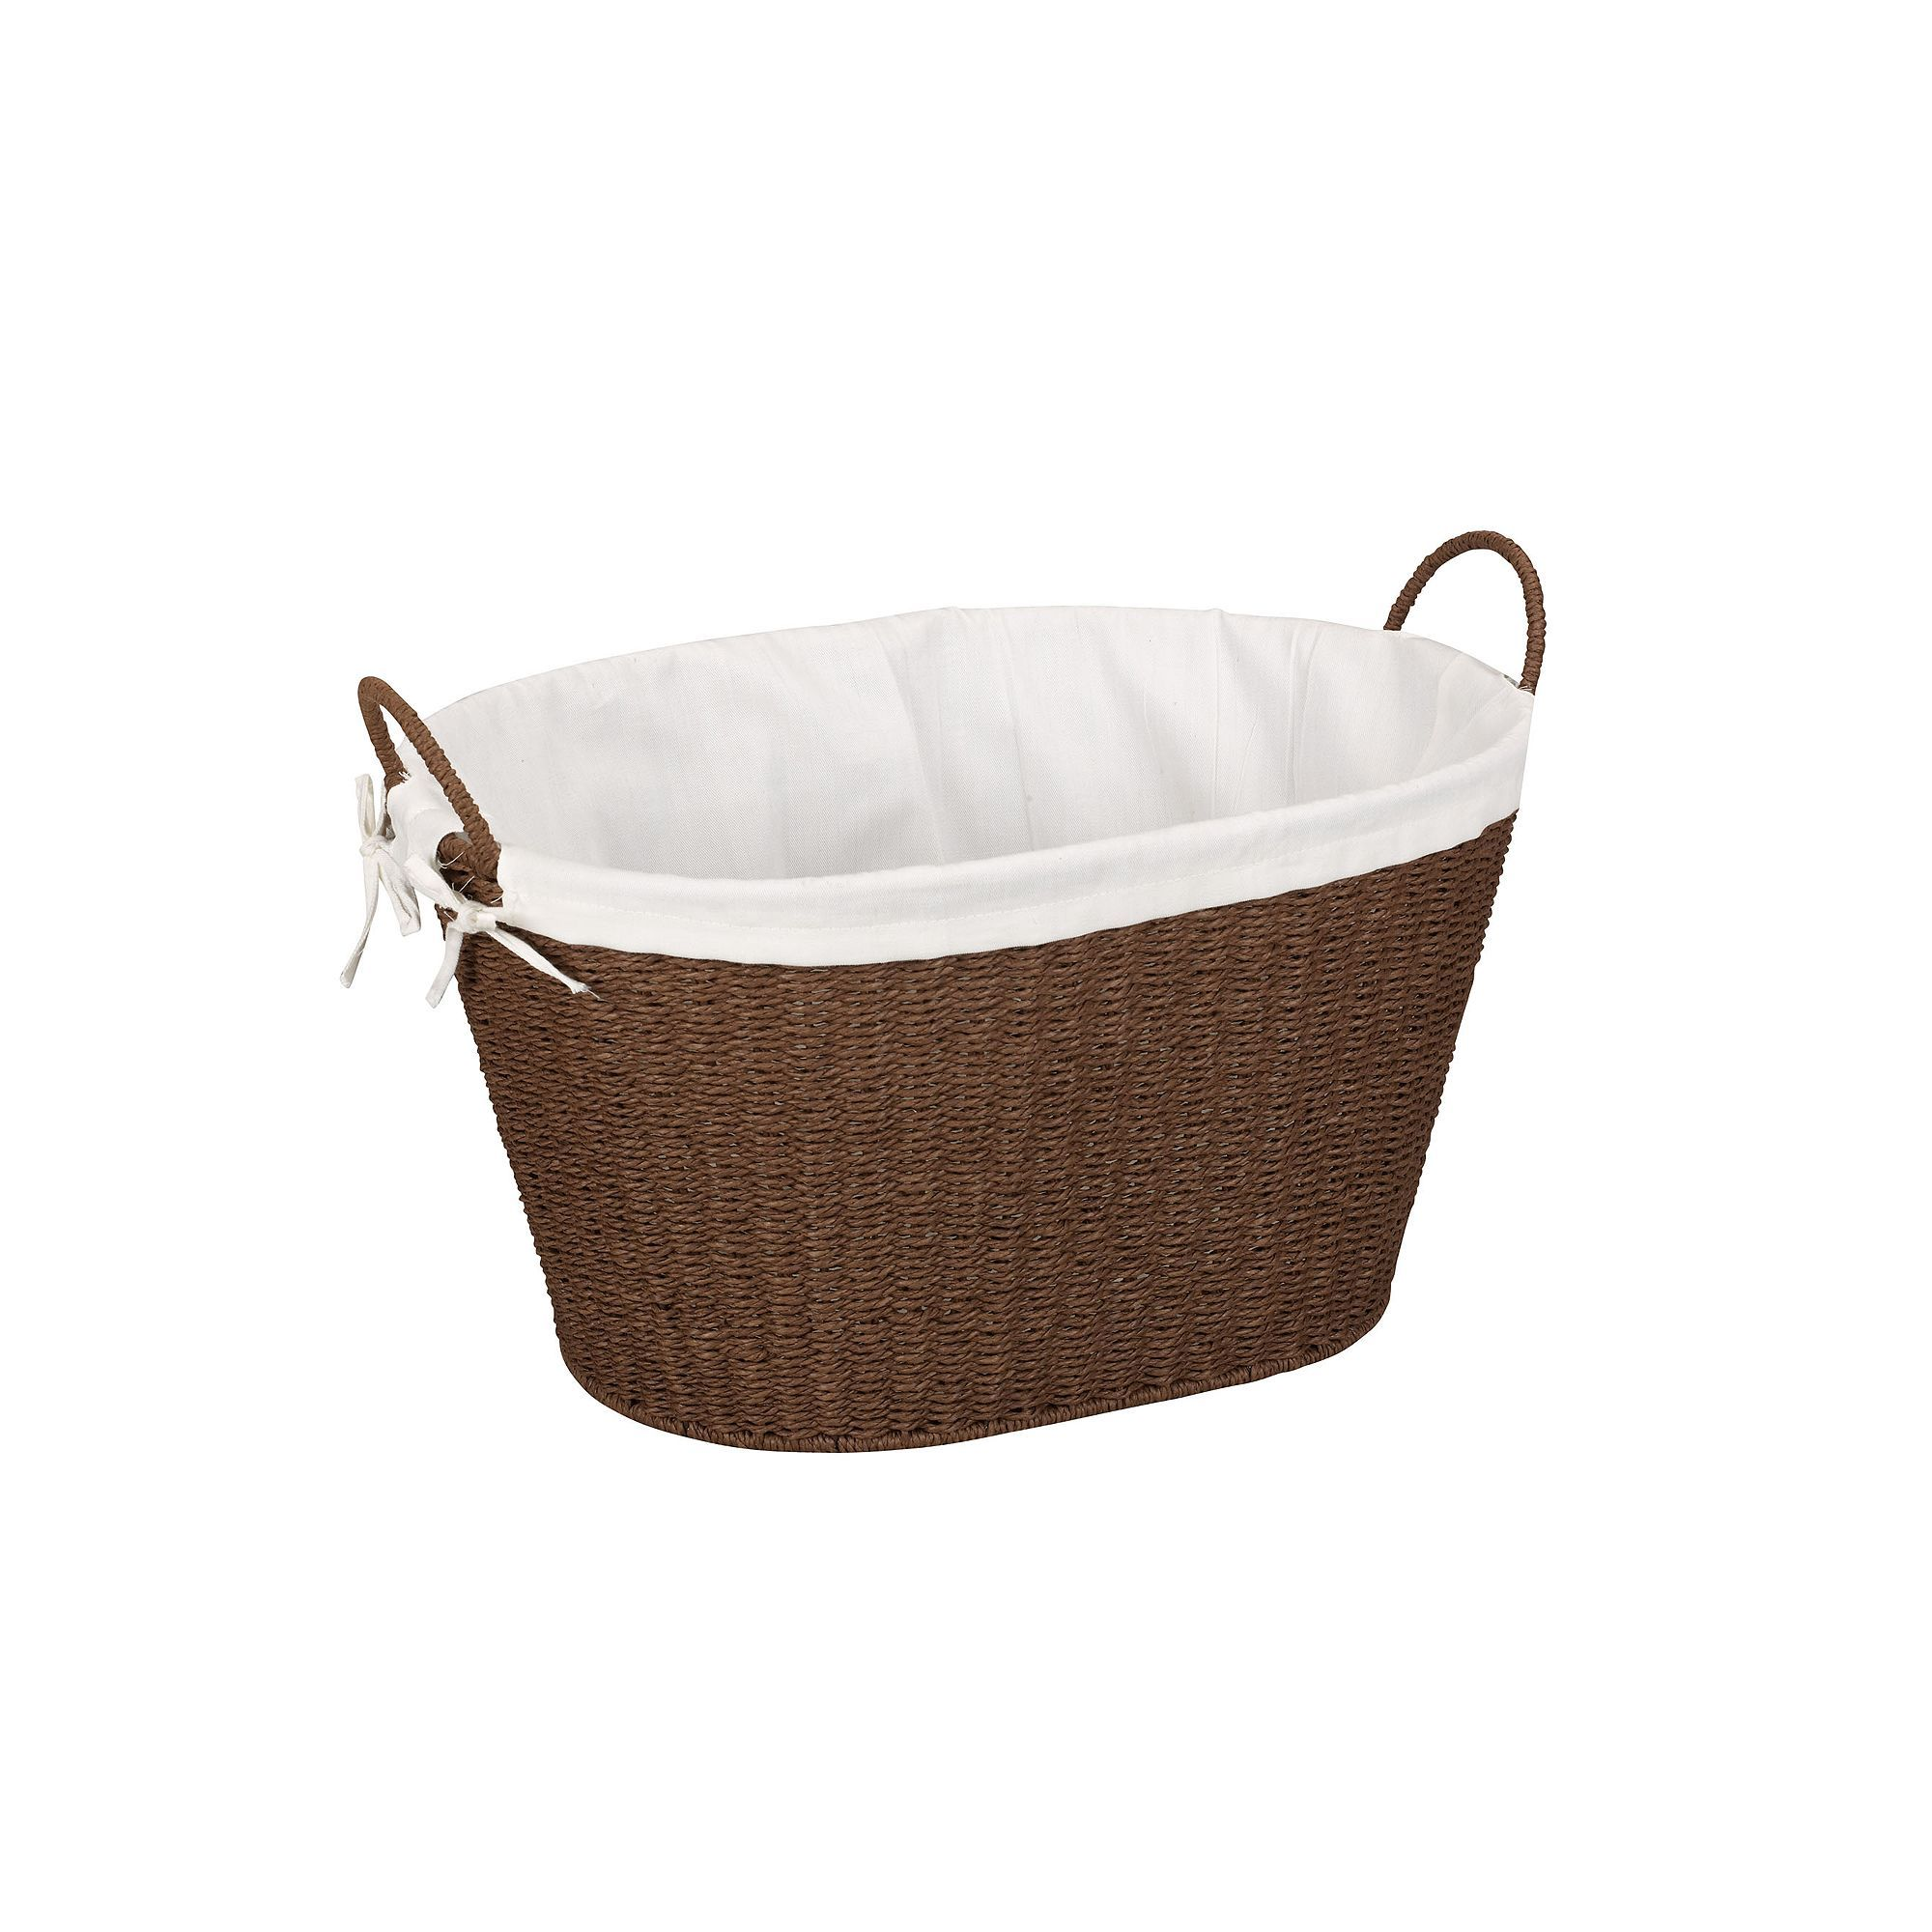 Household Essentials Lined Wicker Laundry Basket Wicker Laundry